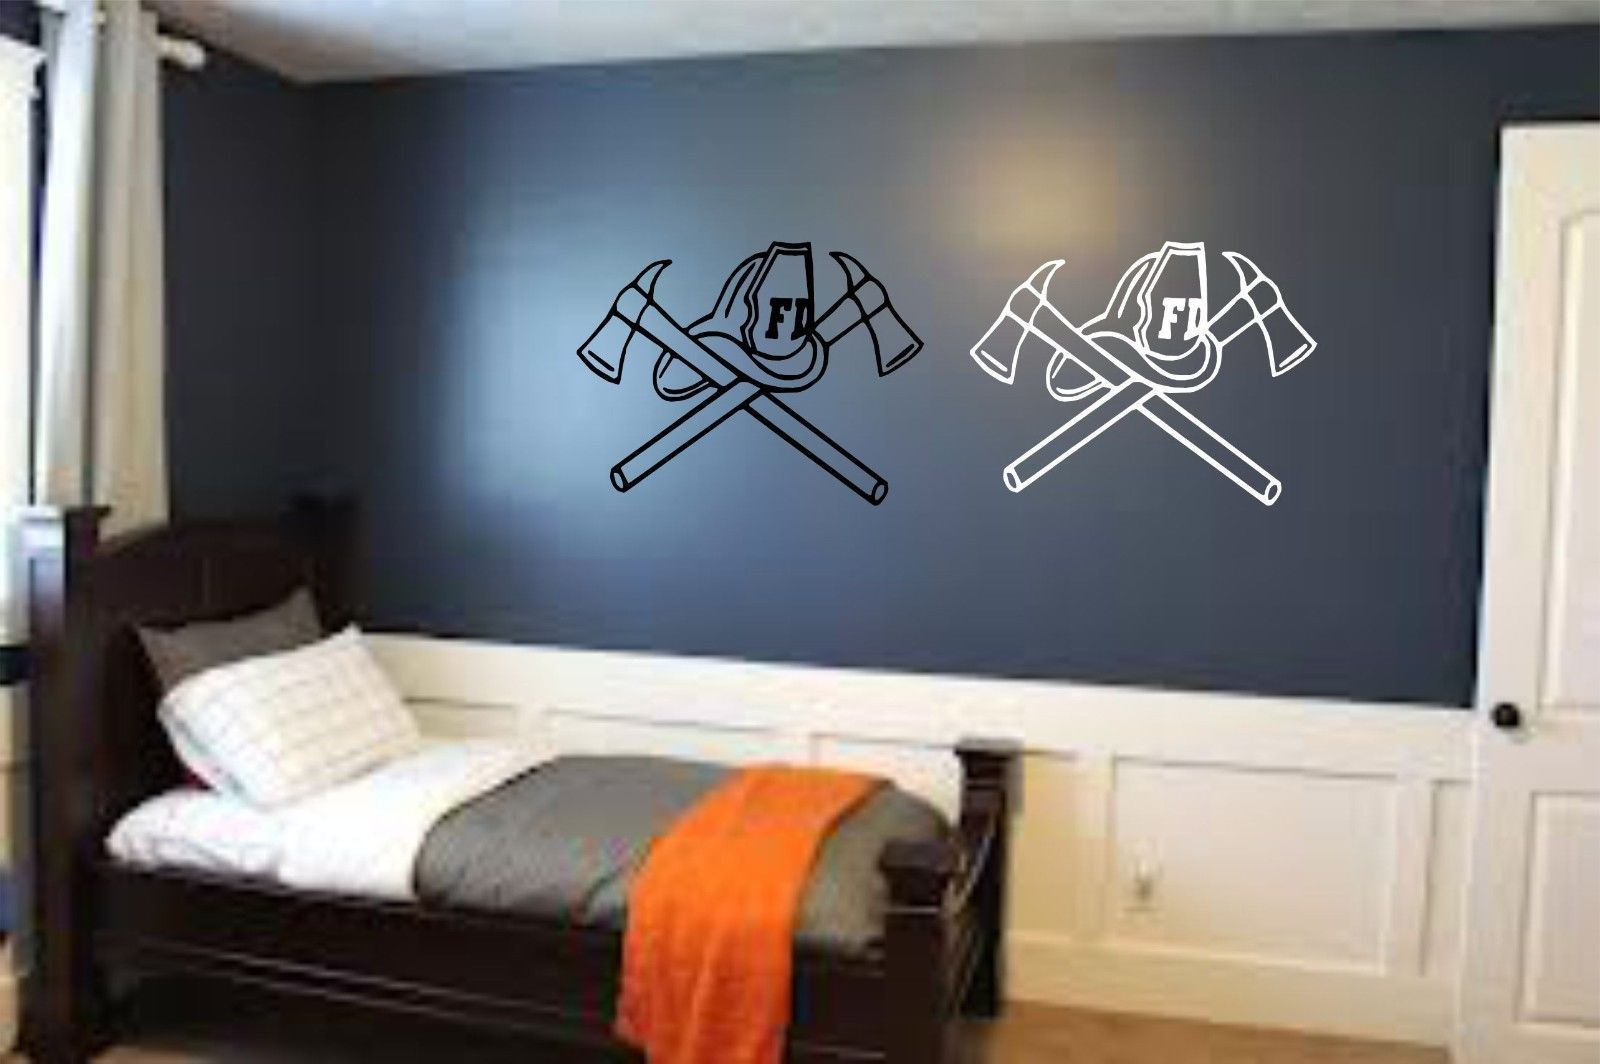 Fireman Firefighter Rescue Axe Room Wall Art Home Decor Mural Vinyl Decal D